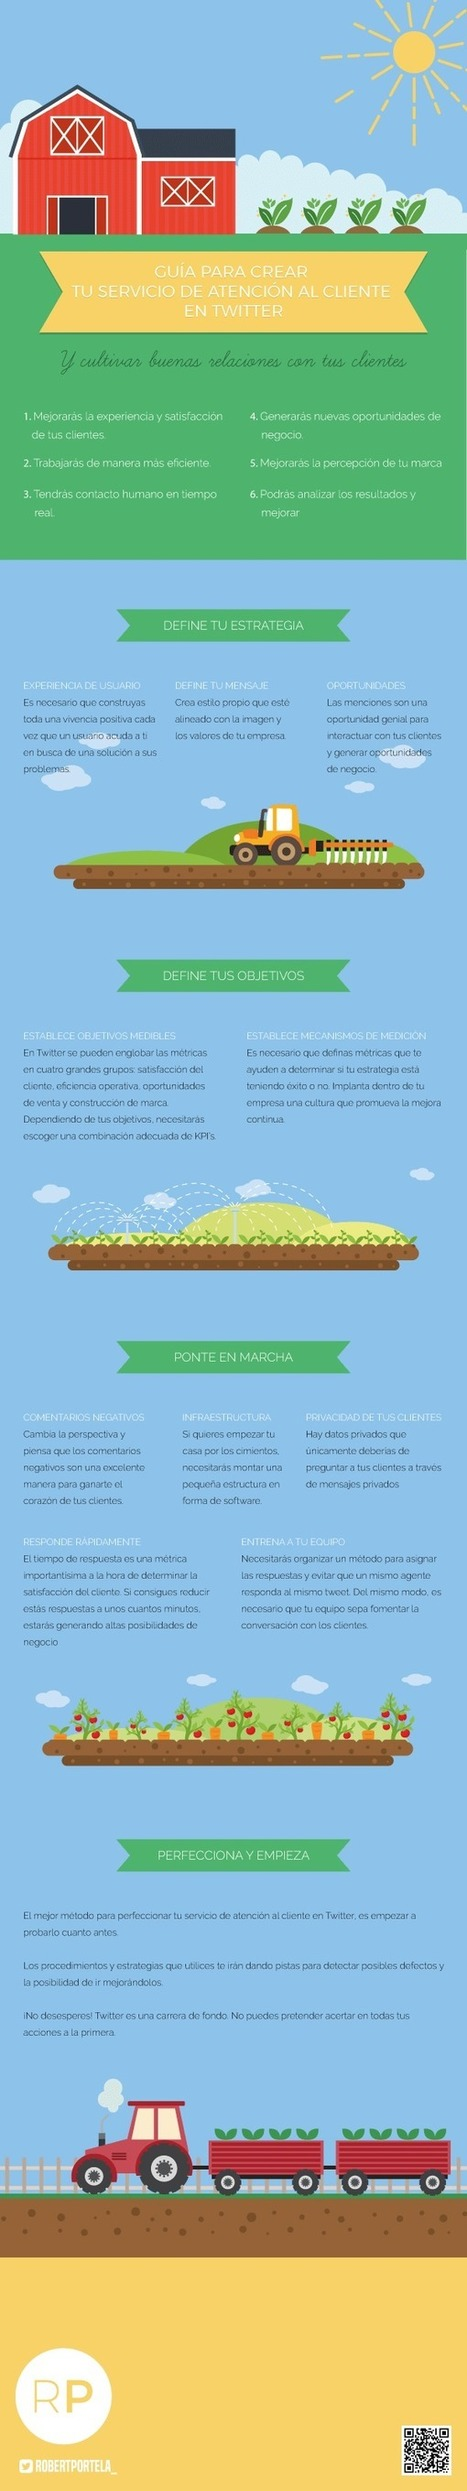 Cómo crear un servicio de atención al cliente en Twitter #infografia #socialmedia #marketing | Mundo Marquetero Digital | Scoop.it